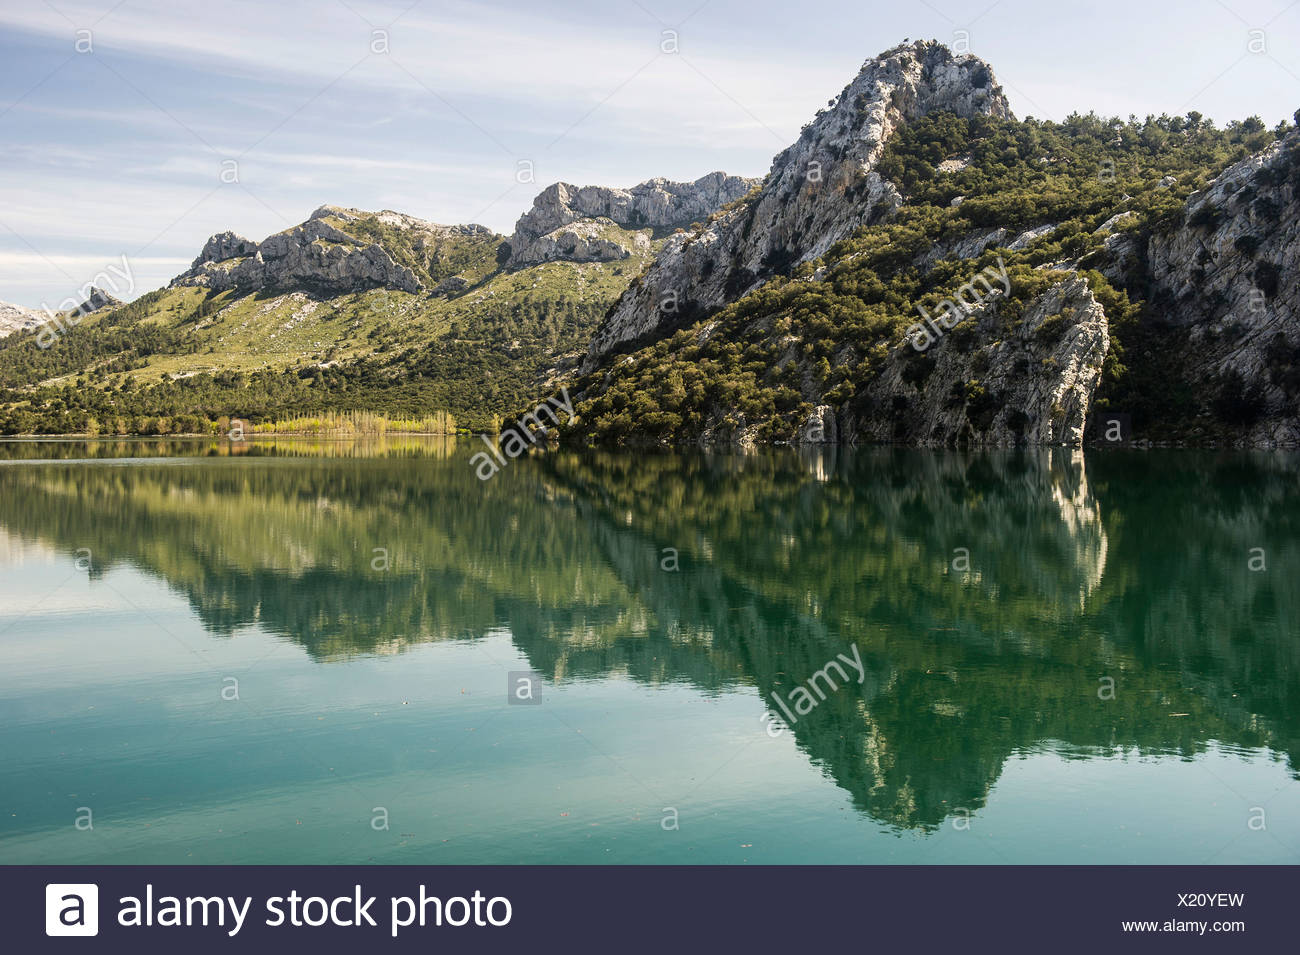 Mountain lake, Embalse de Gorg Blau, Tramuntana, Majorca, Balearic Islands, Spain - Stock Image